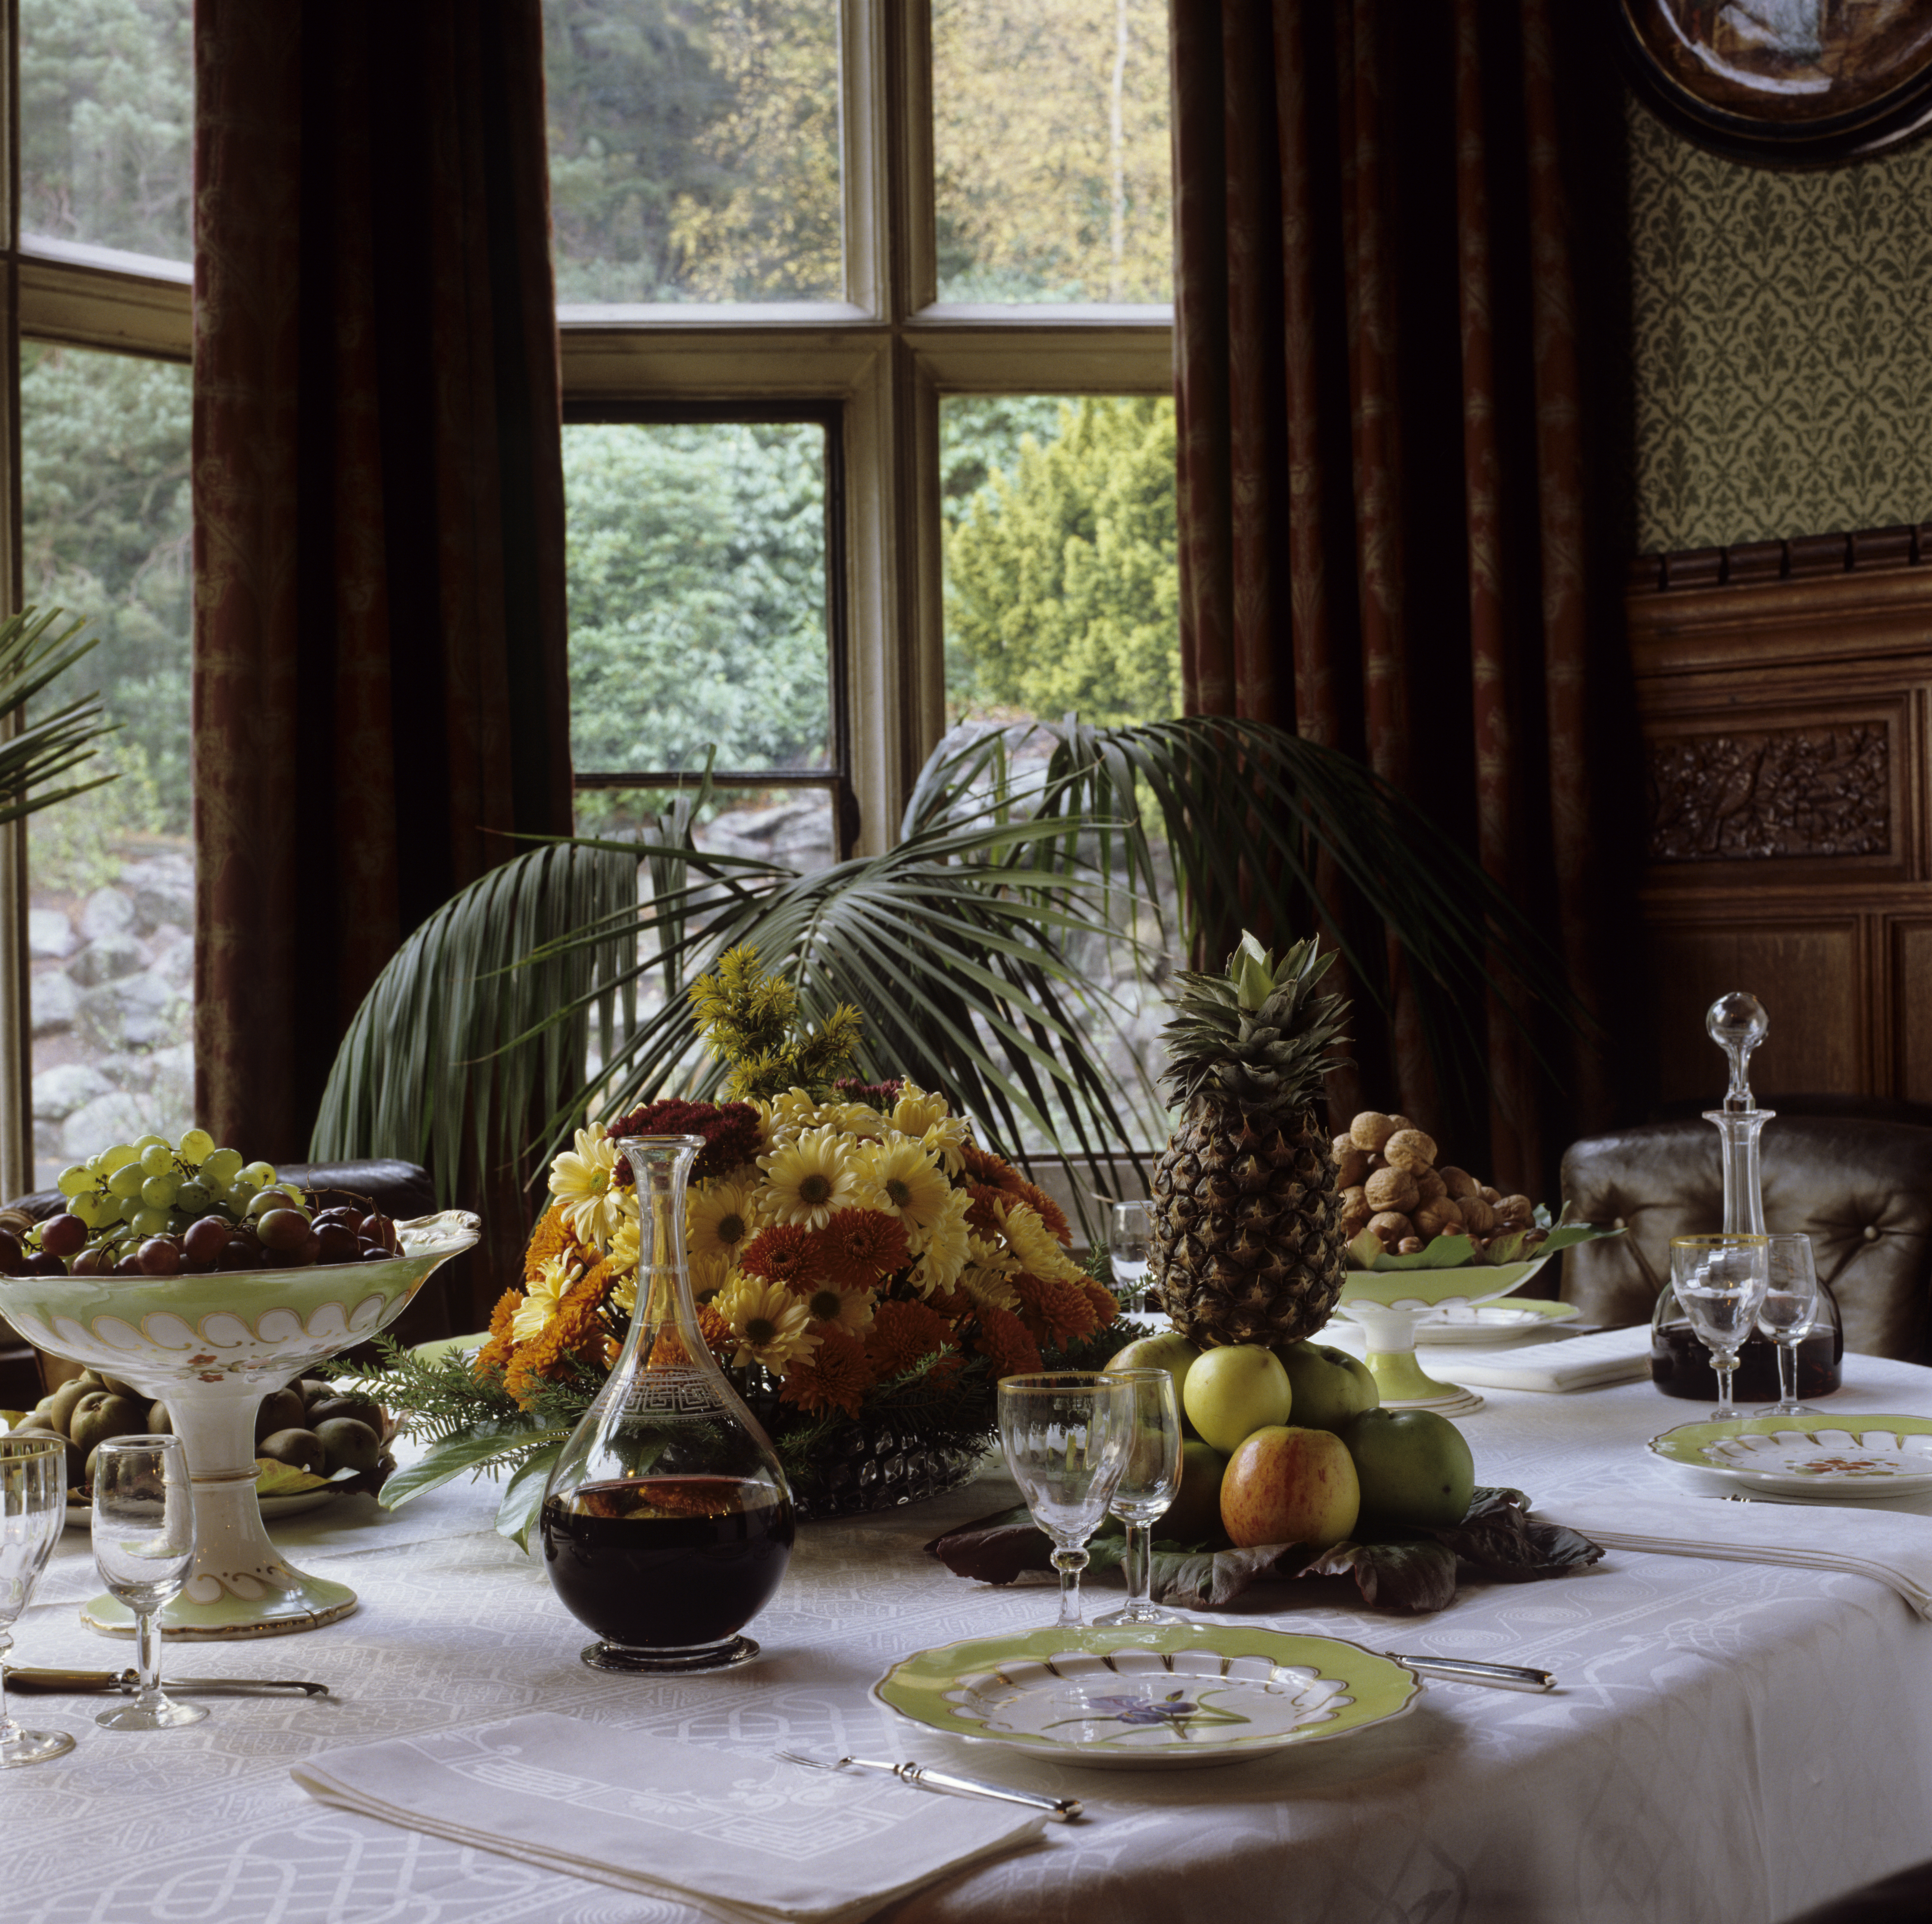 The dining table at Cragside, set for a dessert course with fruit and cheese ©National Trust Images Andreas von Einsiedel